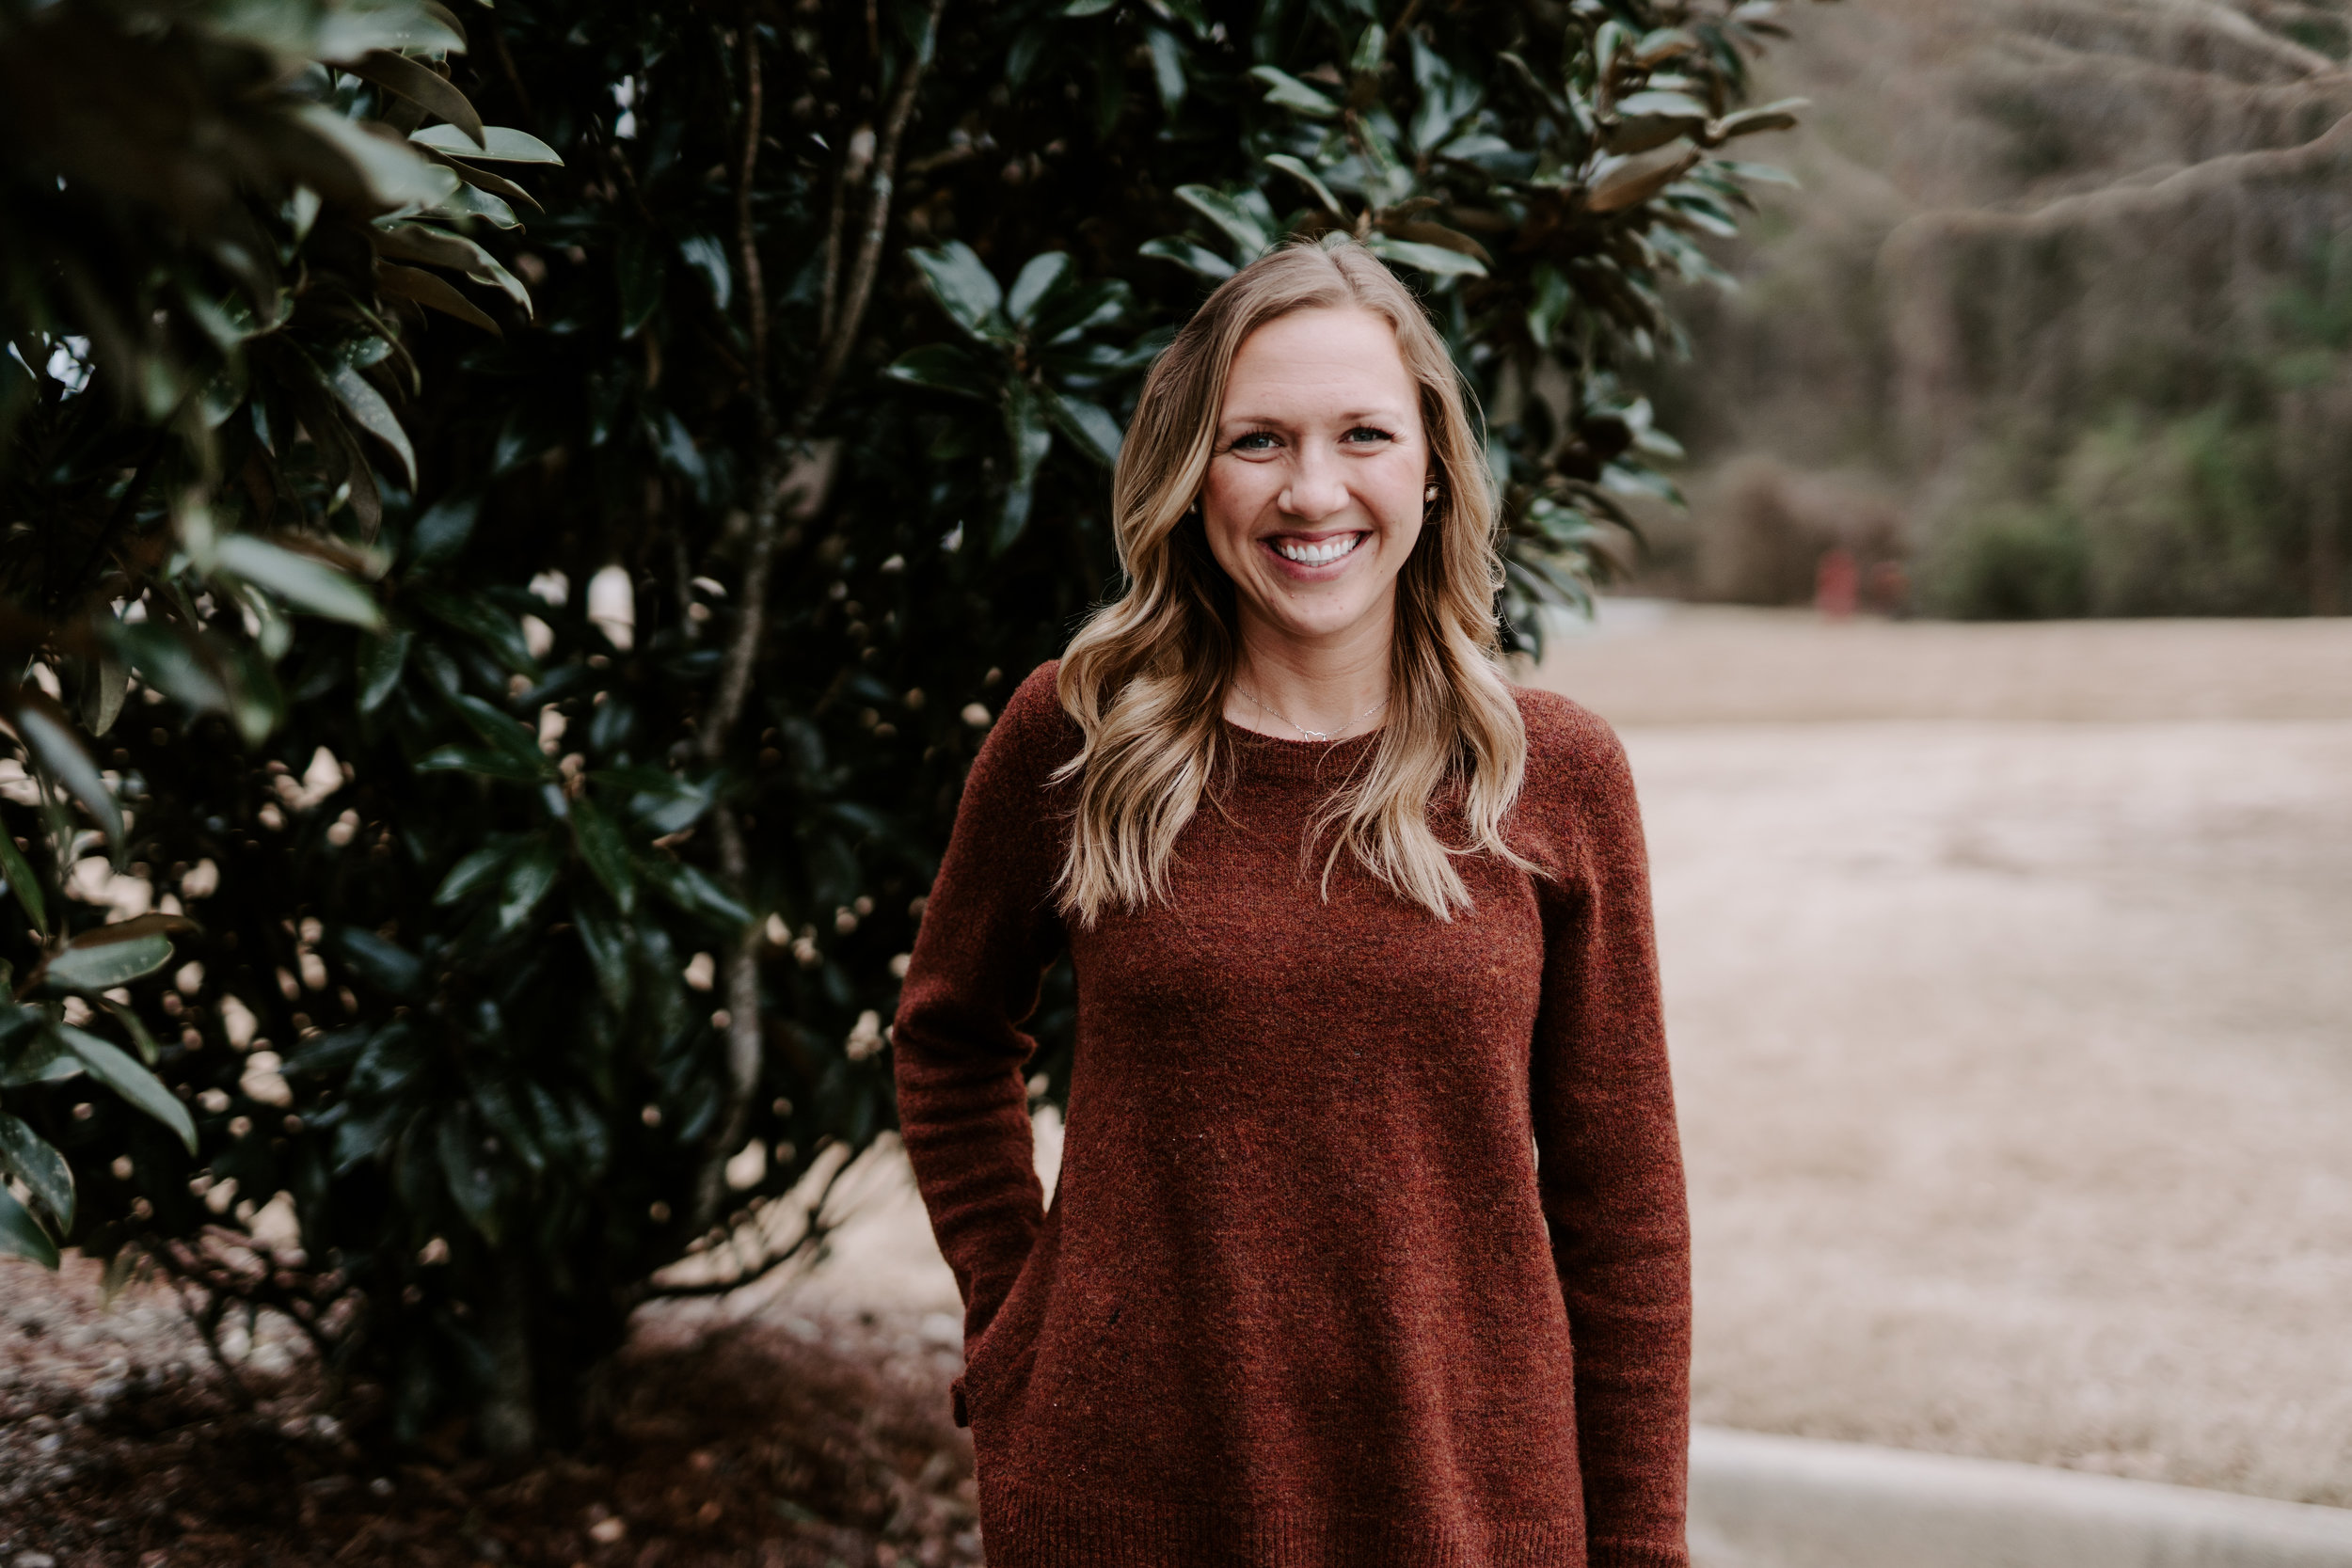 Suzanne Courson, Director of Group Ministry - Suzanne is responsible for the Groups ministry at Cornerstone. She helps form Community and Life Groups and leads group coaches and leaders. Suzanne is also part of the College ministry team.suzanne@cornerstonebuzz.org